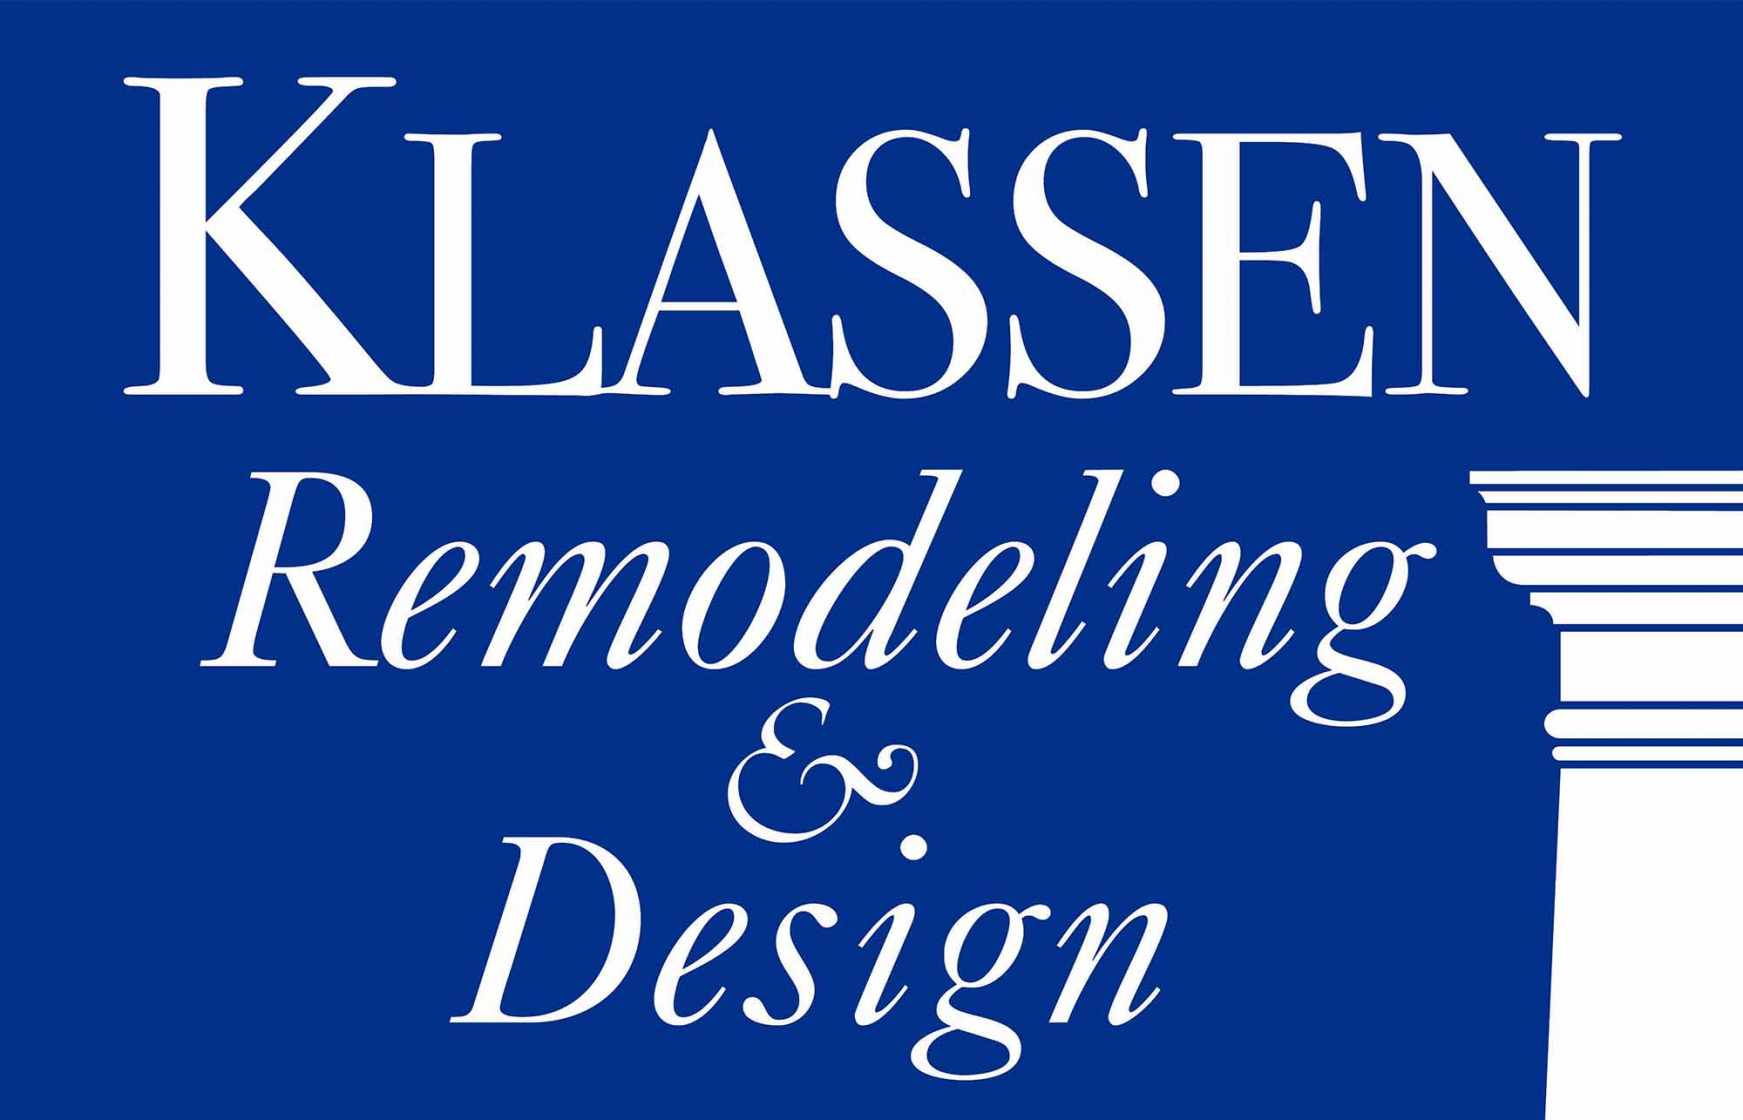 Klassen Remodeling & Design, providing award-winning customer service